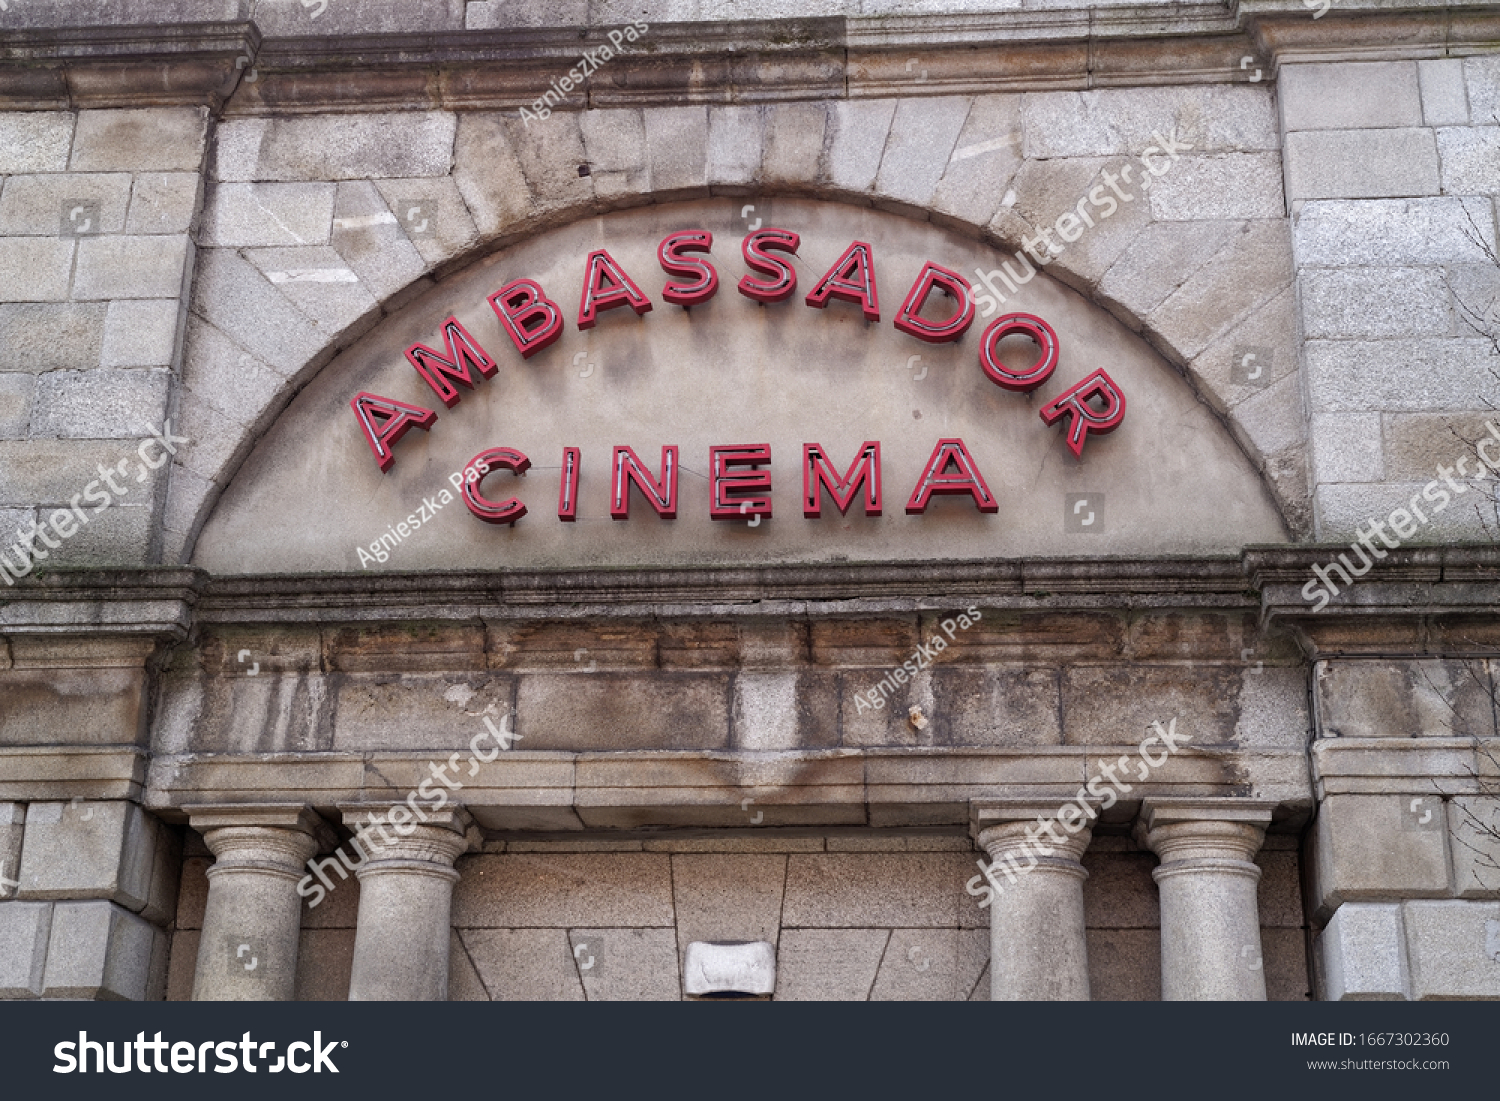 DUBLIN, IRELAND - MARCH 5, 2020: Neon sign with Ambassador Cinema name. The building was used as cinema in the past and currently it's exhibition and event centre.